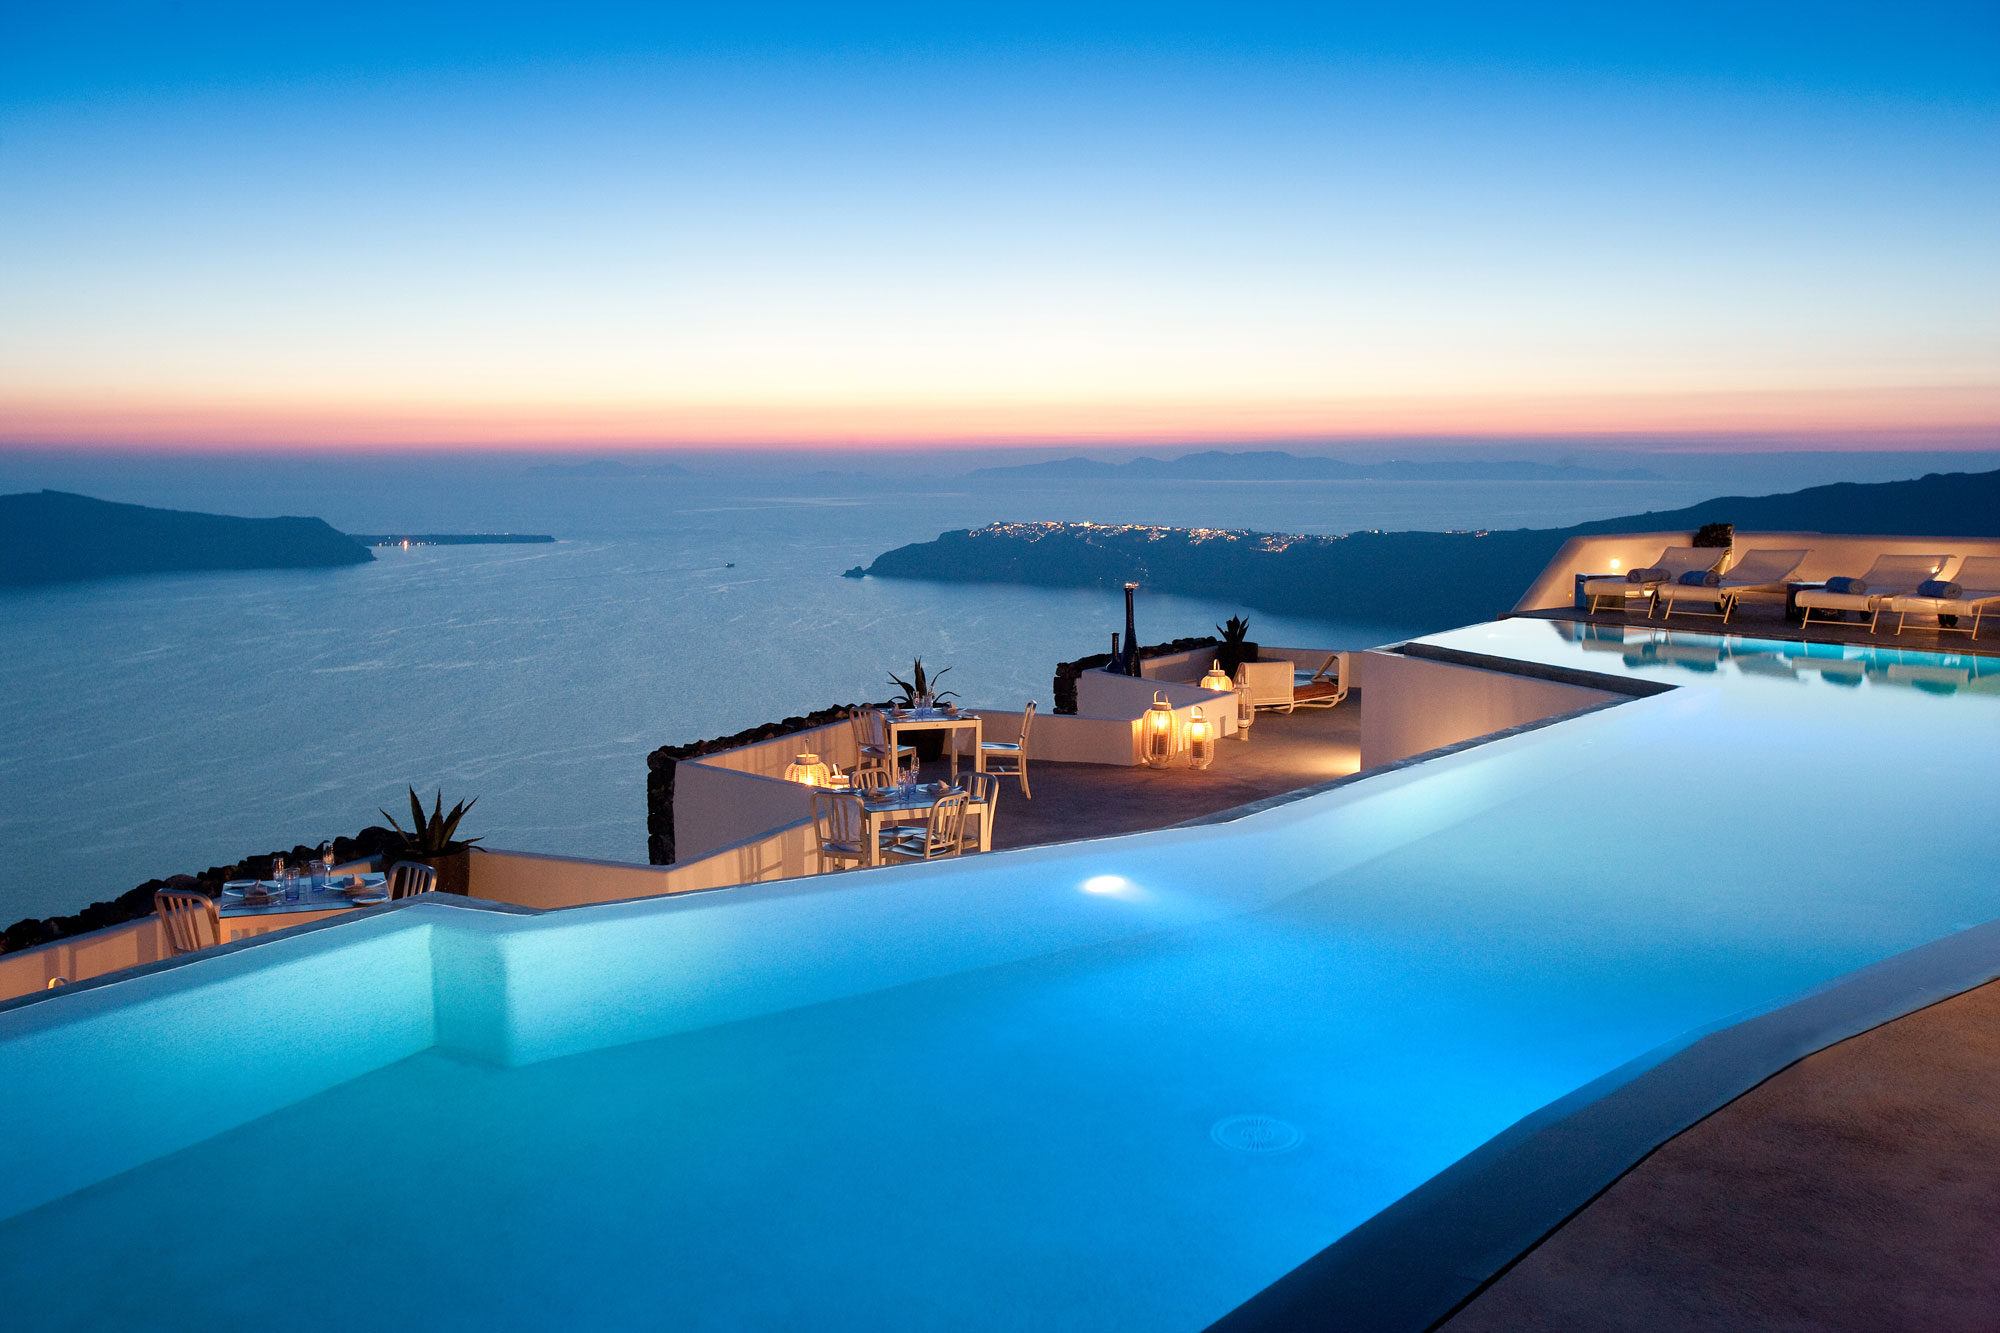 AD-Stunning-Photos-Of-Santorini-Greece-10